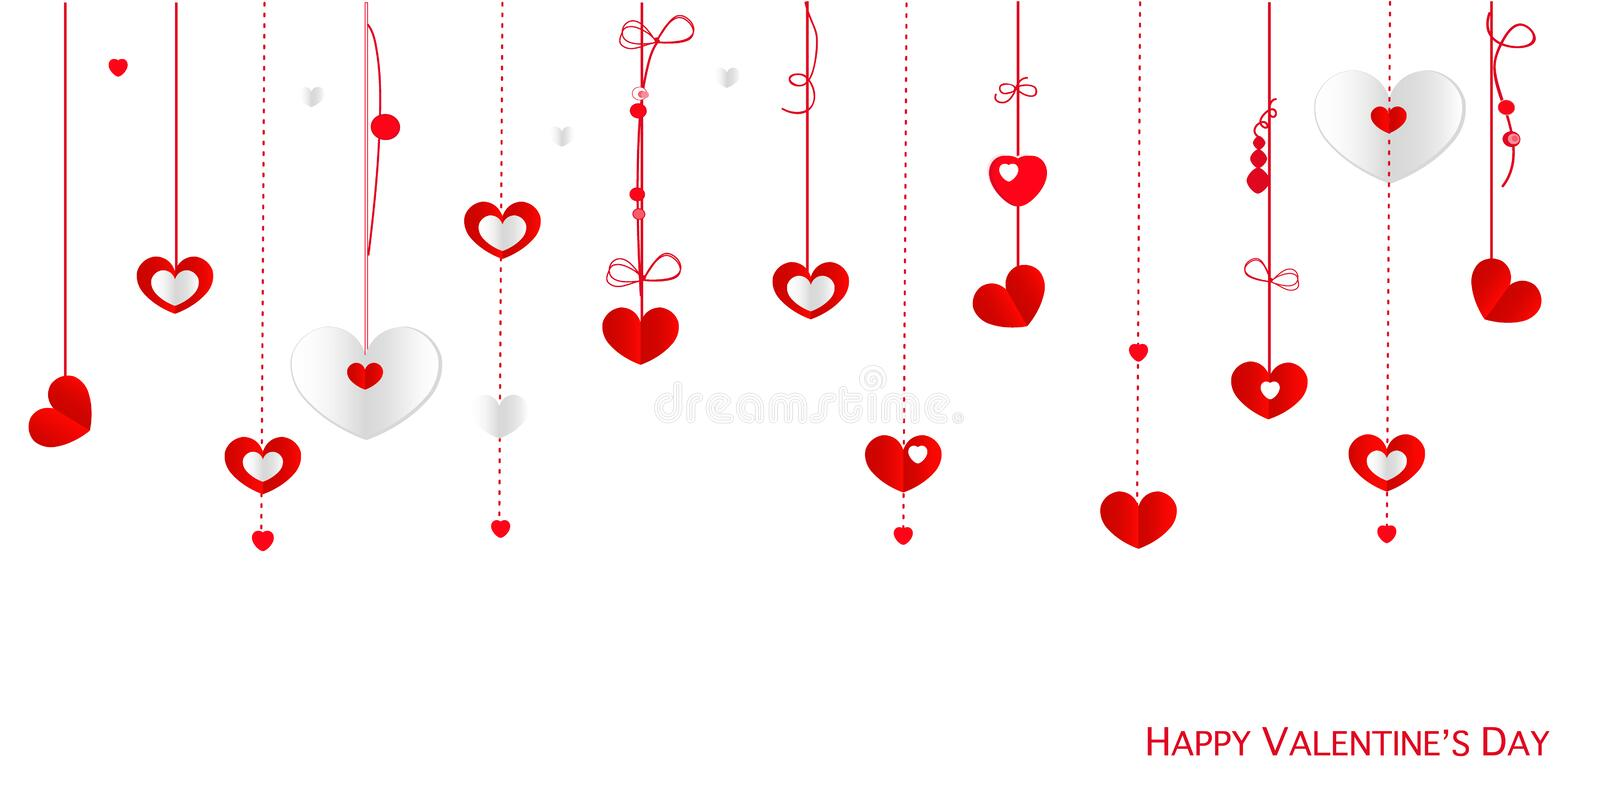 Happy Valentine's Day greeting card with border design hanging hearts vector background royalty free illustration